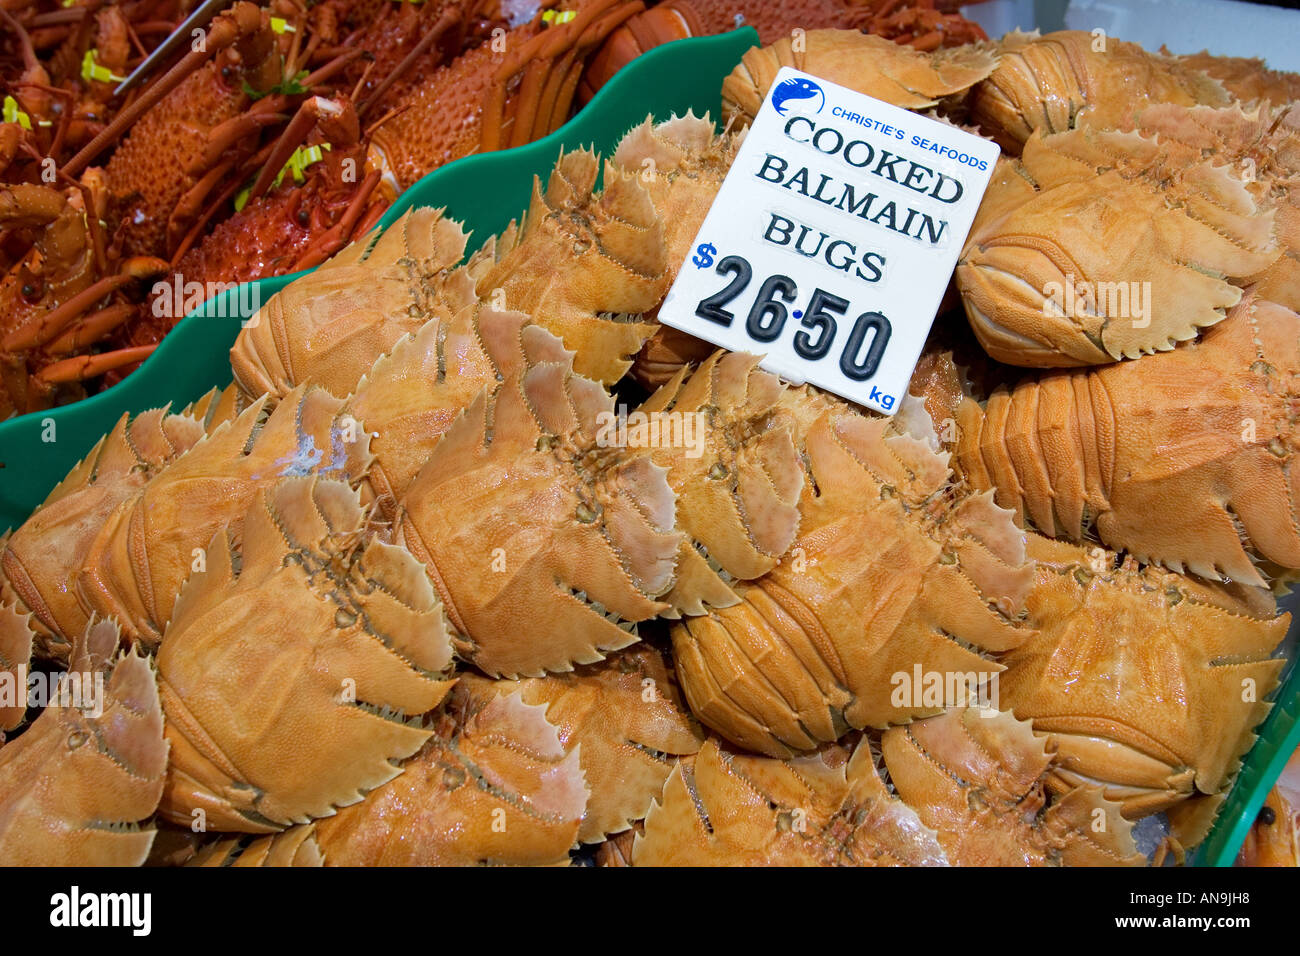 cooked-balmain-bugs-for-sale-at-sydney-f